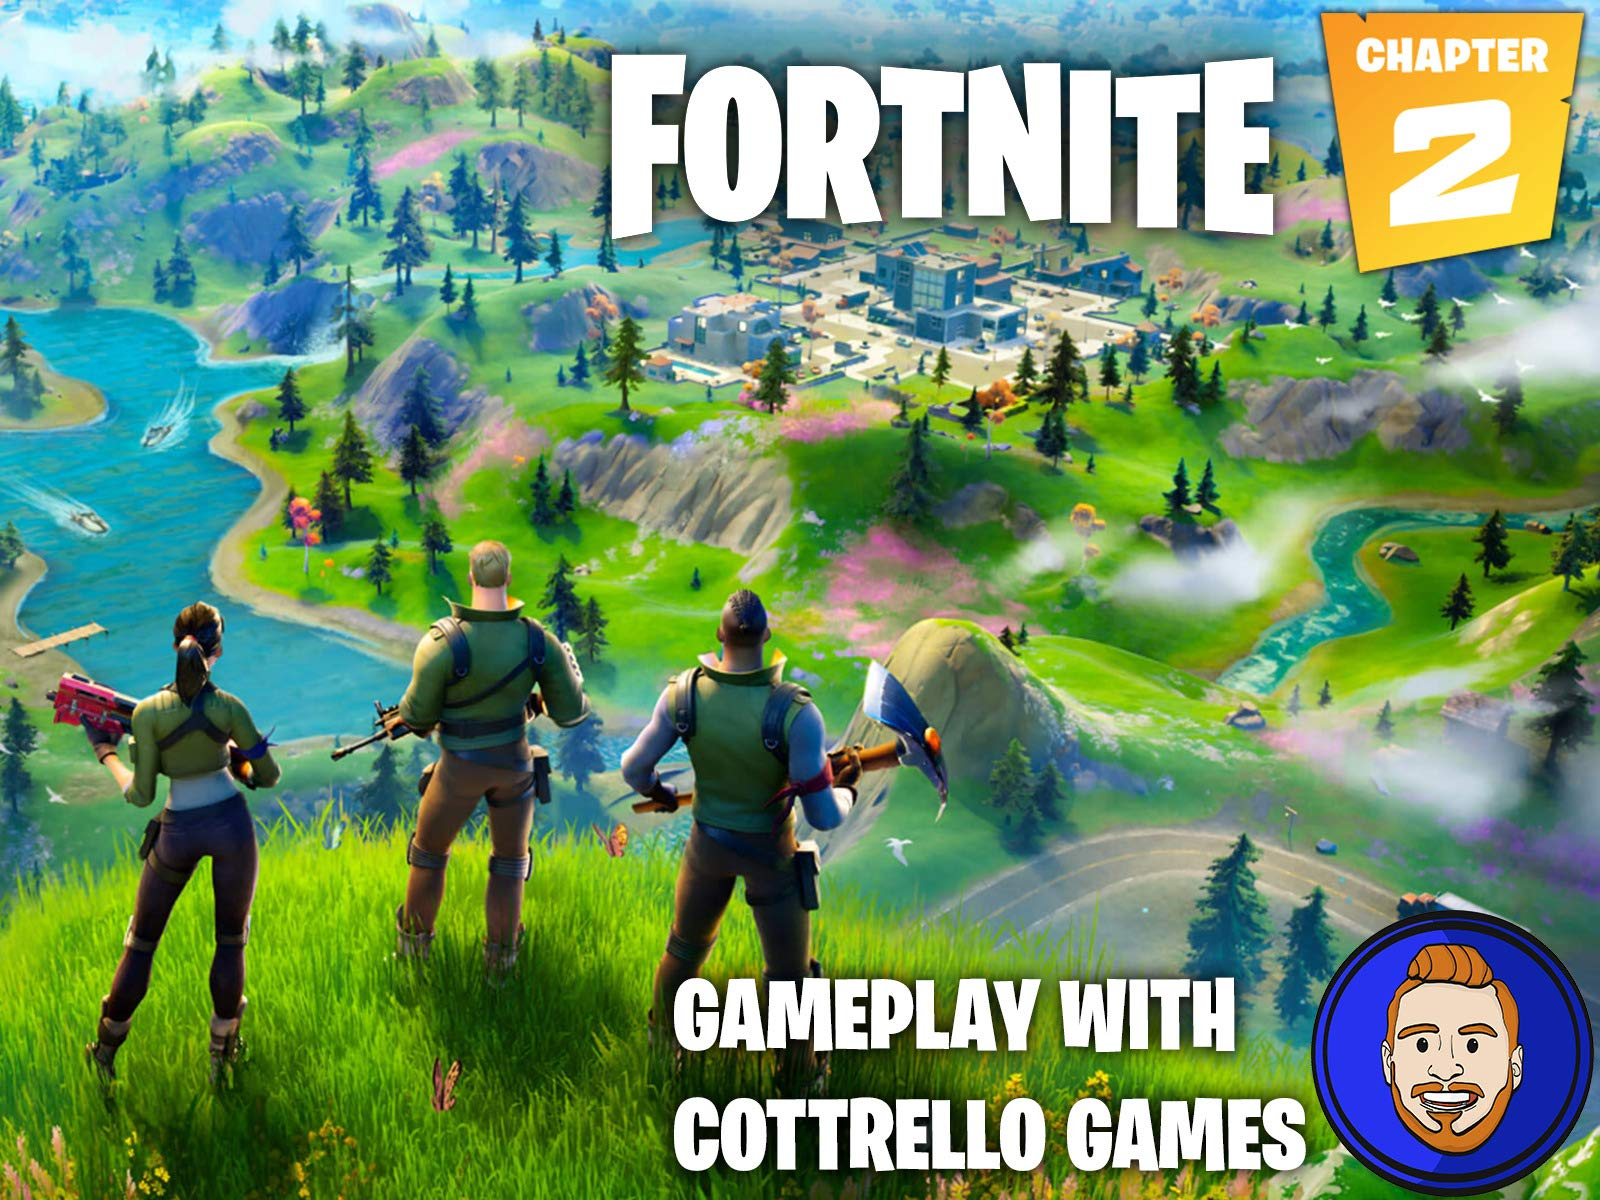 Fortnite Chapter 2 Gameplay with Cottrello Games